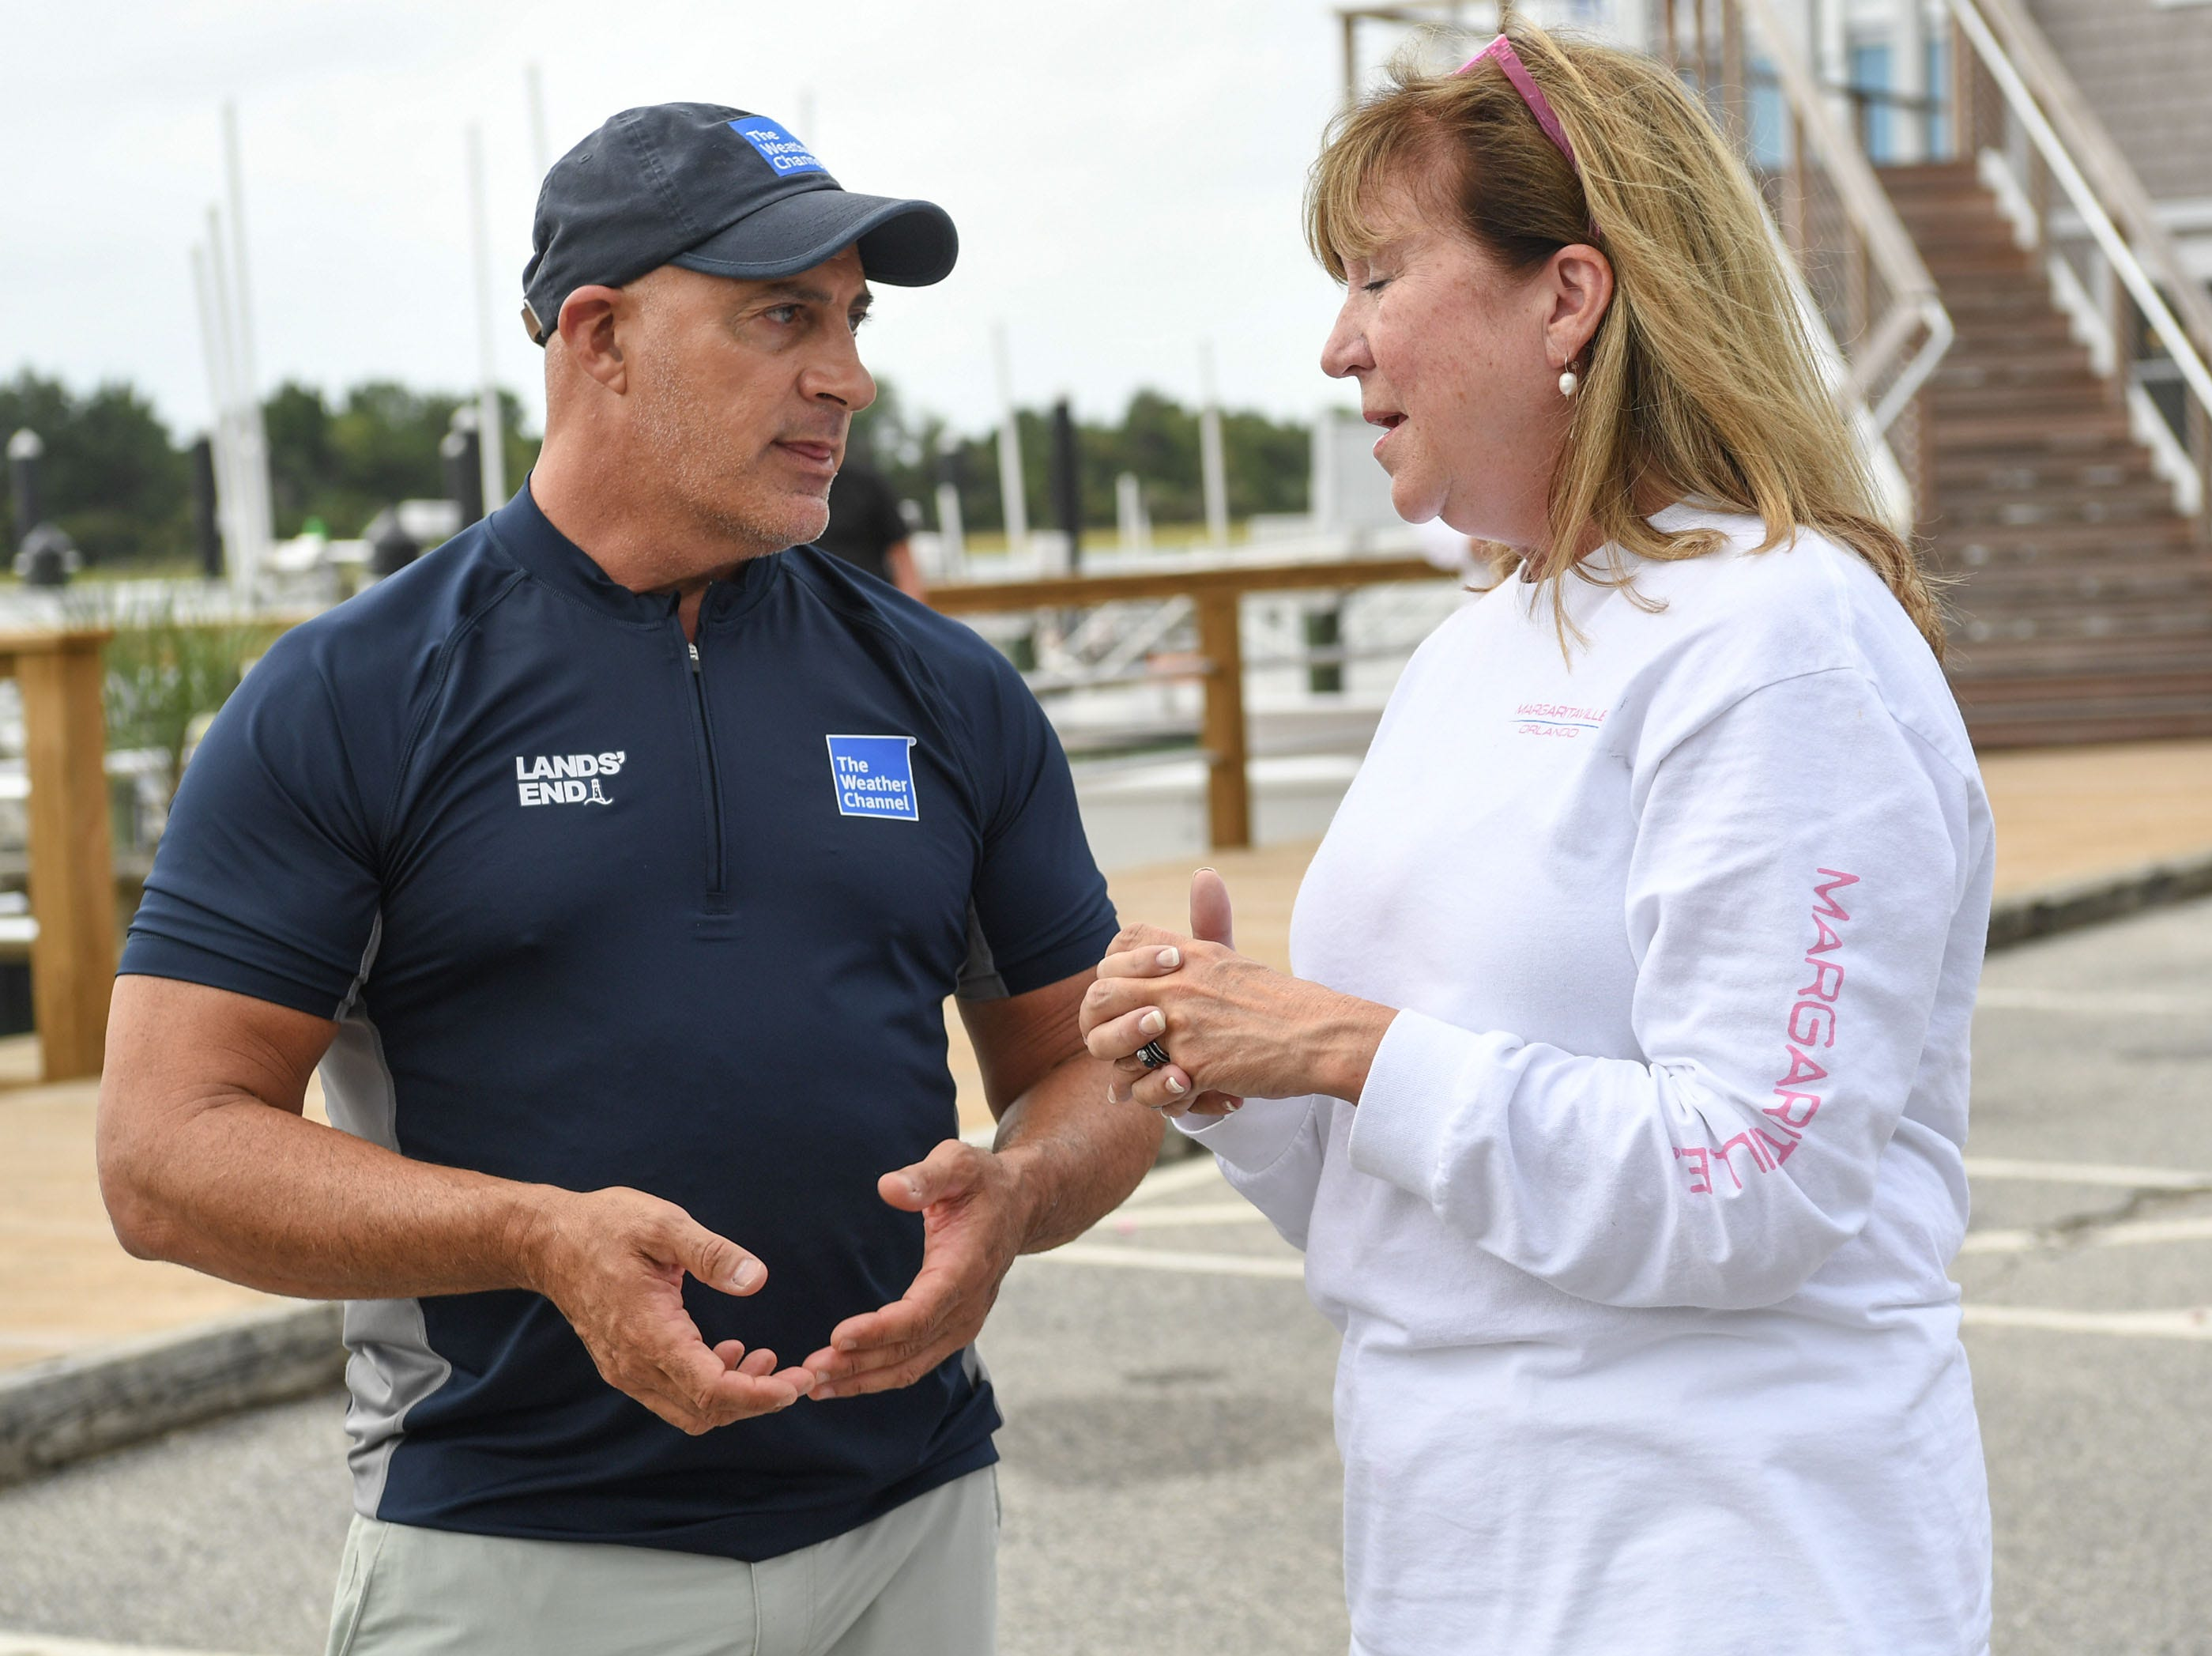 Jim Cantore, left, of The Weather Channel talks with Kathy Gresham of the New Hanover Regional Medical Center at Crocker's Landing in Wilmington, NC before Hurricane Florence in Wilmington, North Carolina on Thursday, September 13, 2018. (Ken Ruinard / Greenville News / Gannett USA Today Network / 2018 )